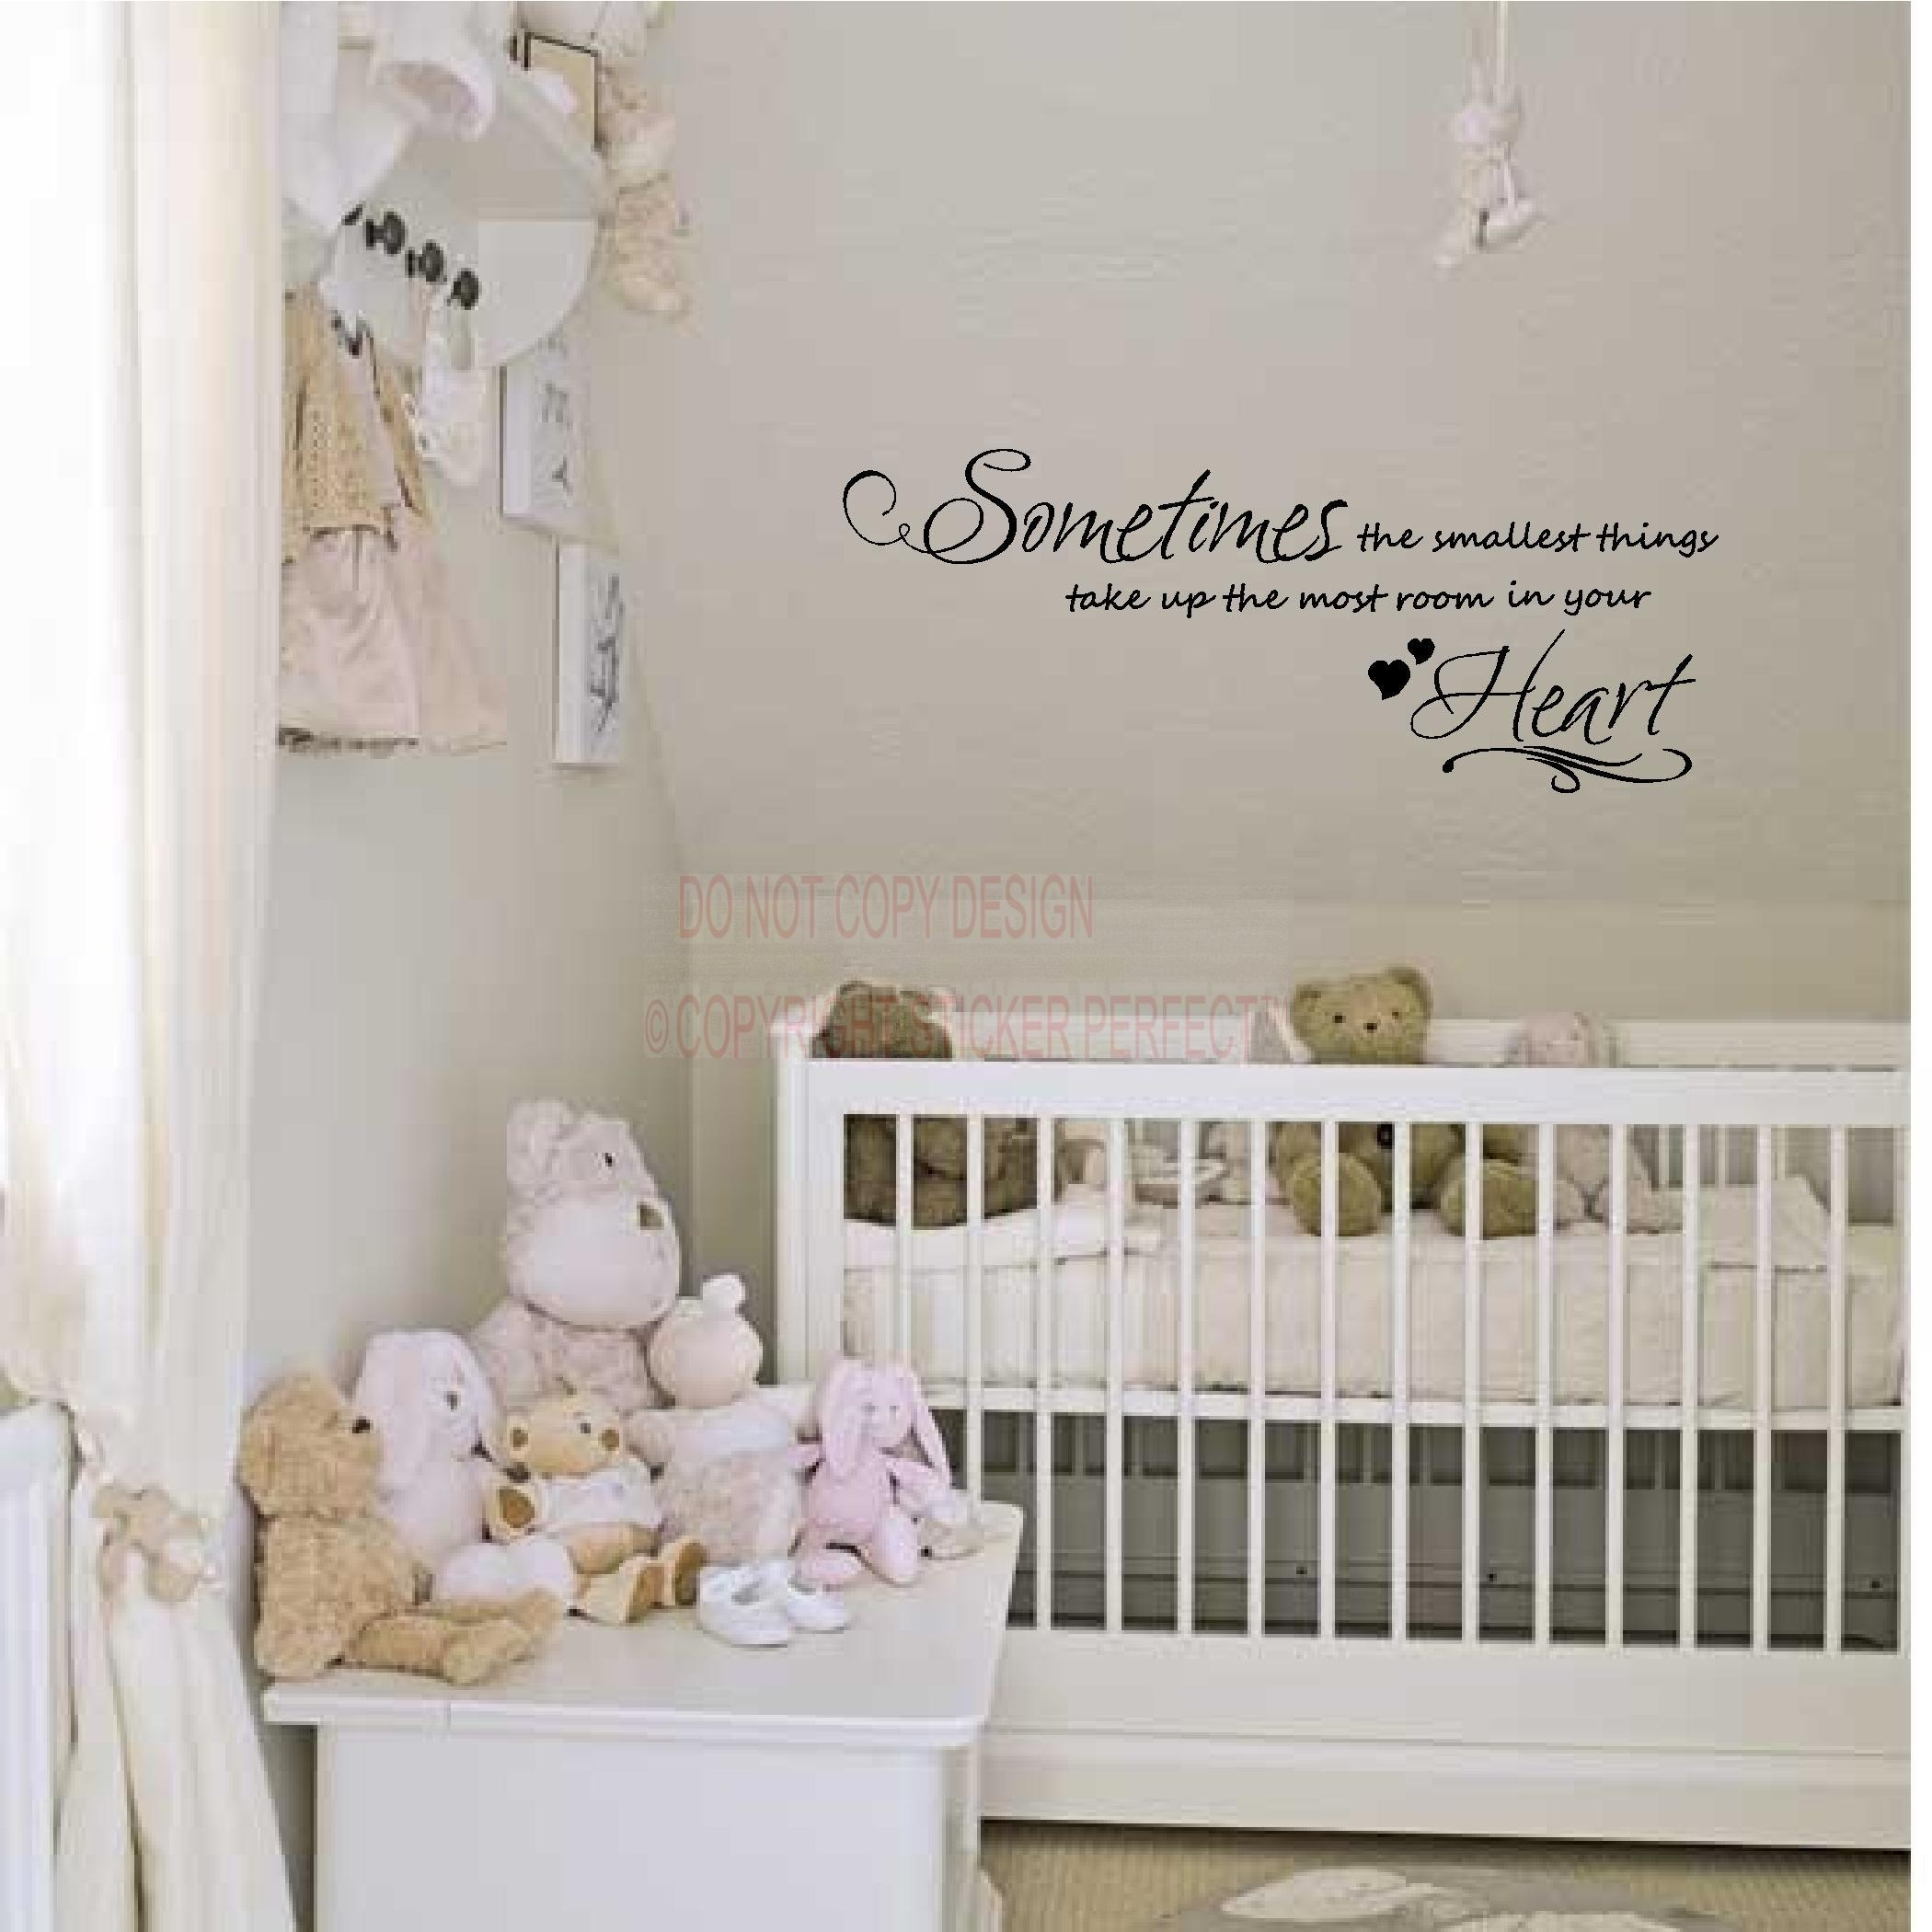 3 Sometimes The Smallest Things Take Up The Most Room In Your with Winnie The Pooh Wall Art For Nursery